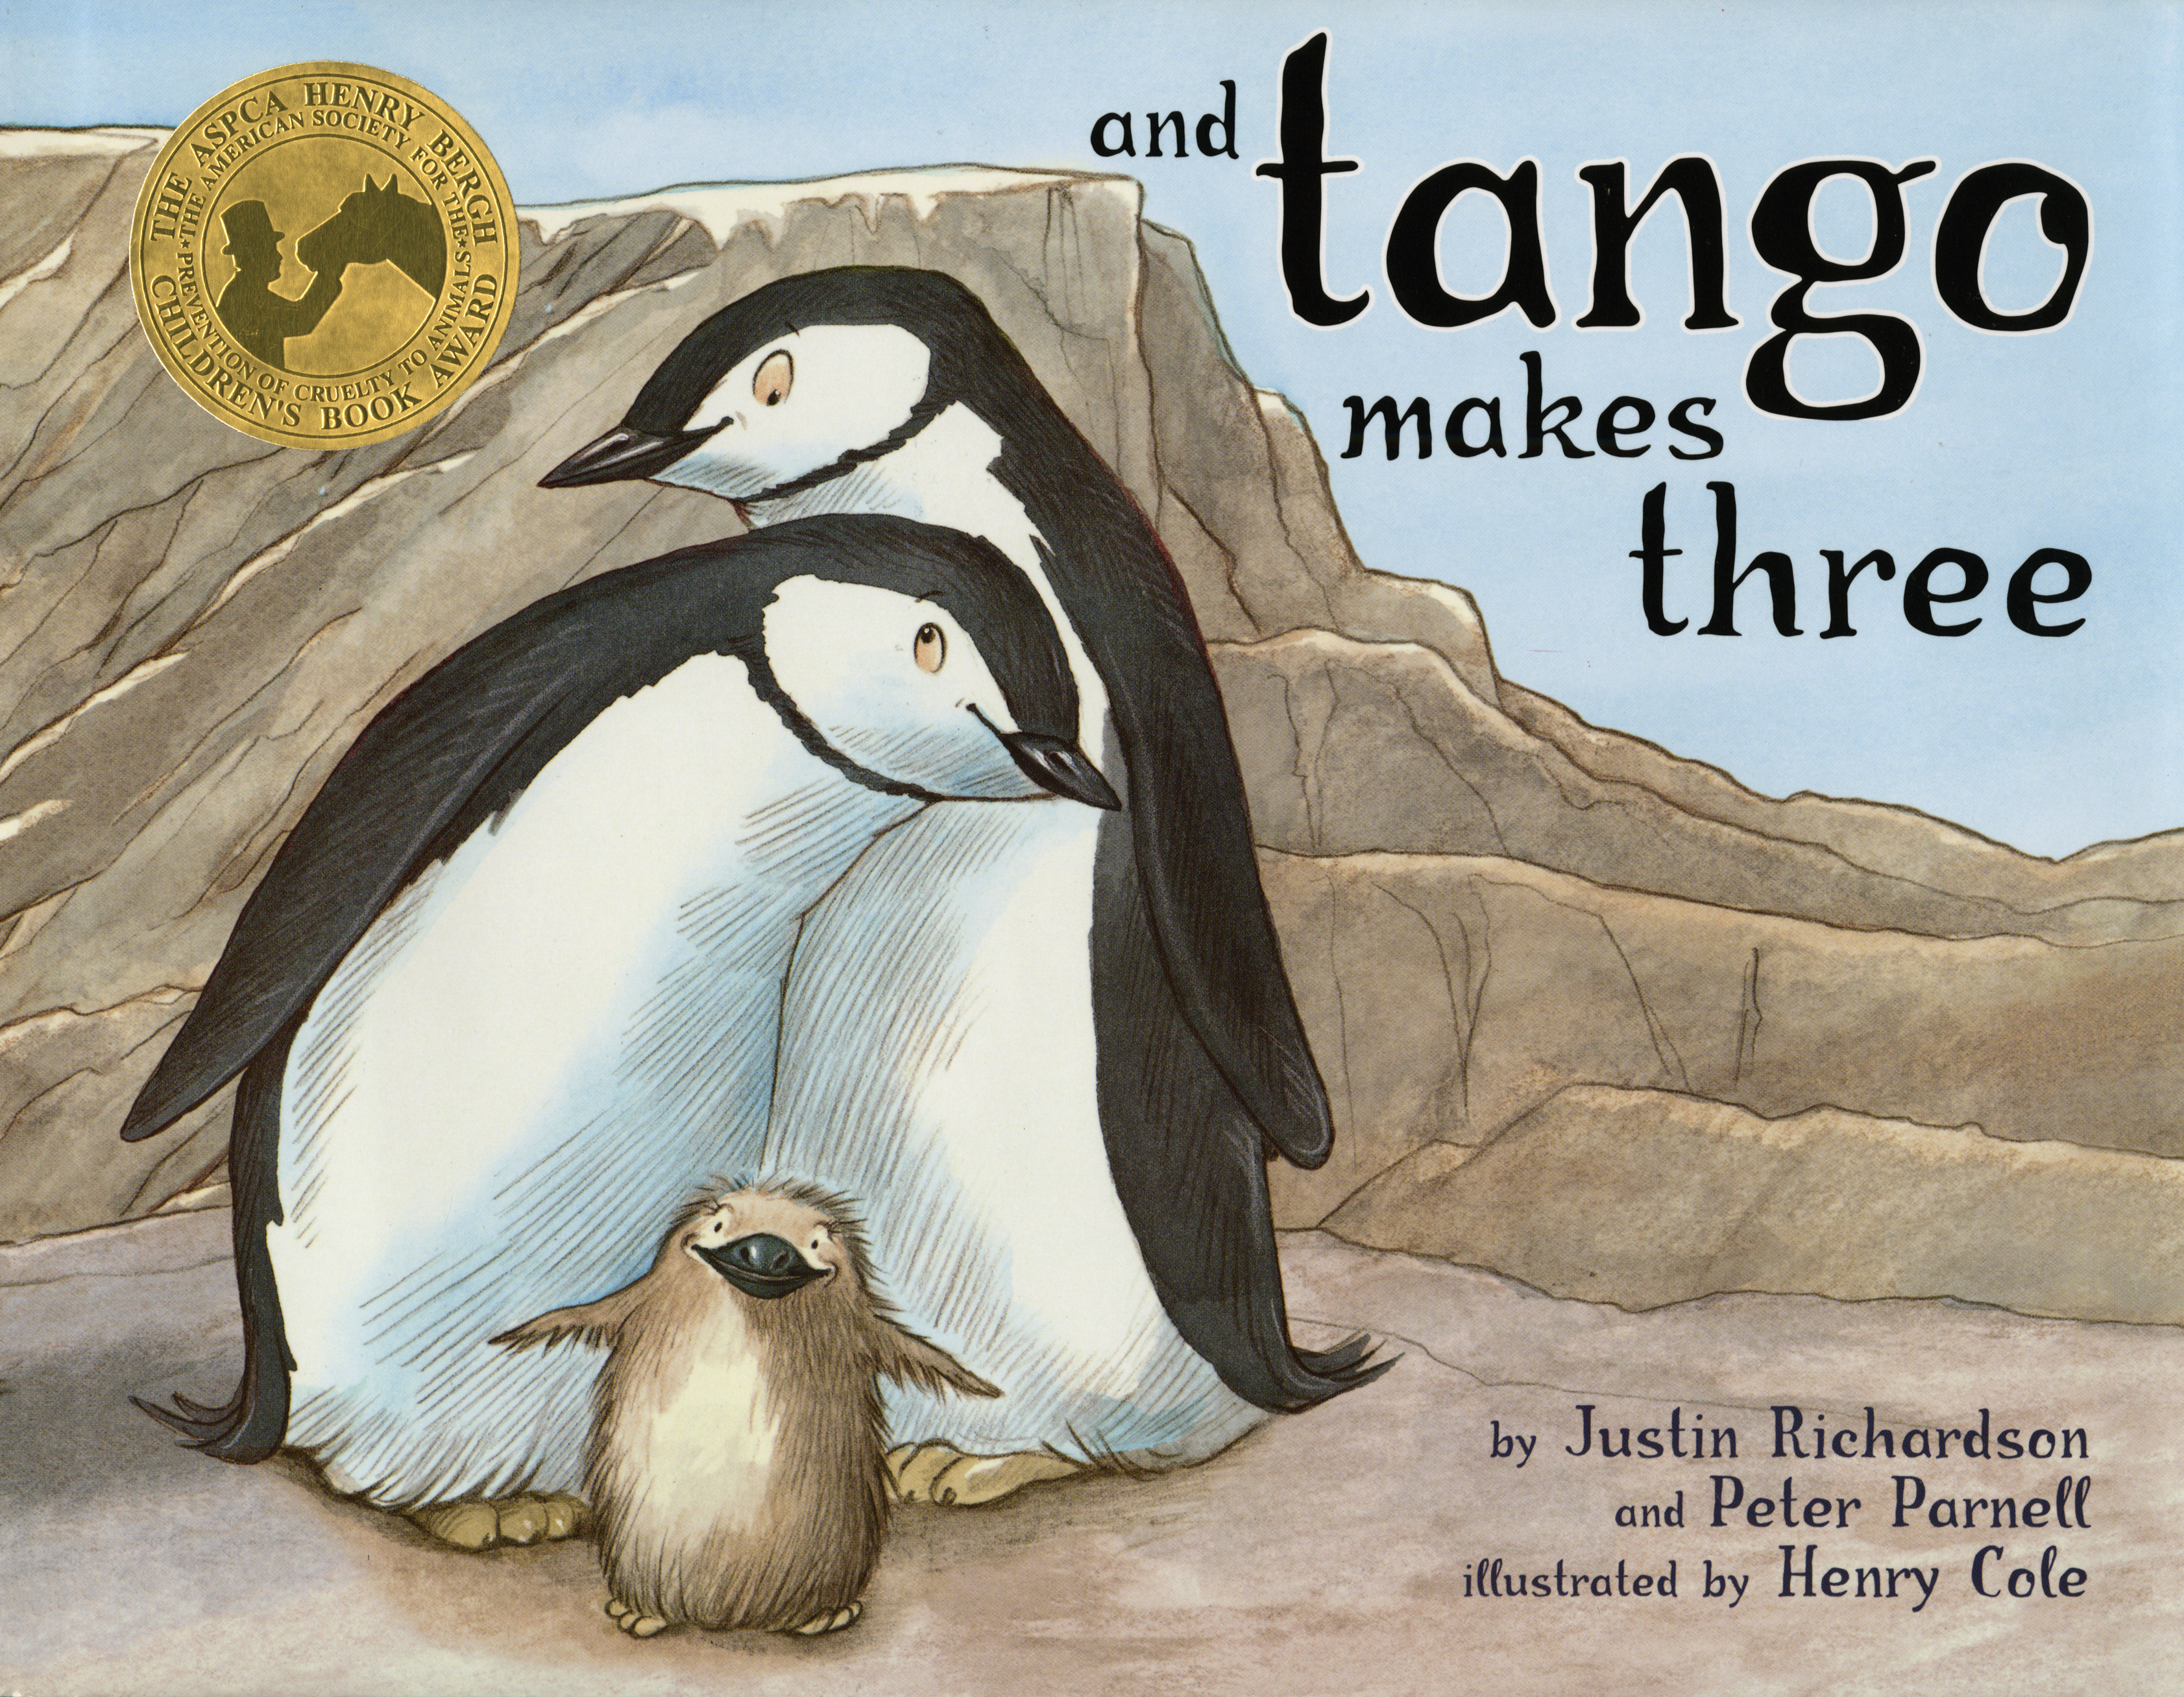 book cover for tango makes three. an illustration of two penguins entwined while standing, with one small penguin standing in front of them.